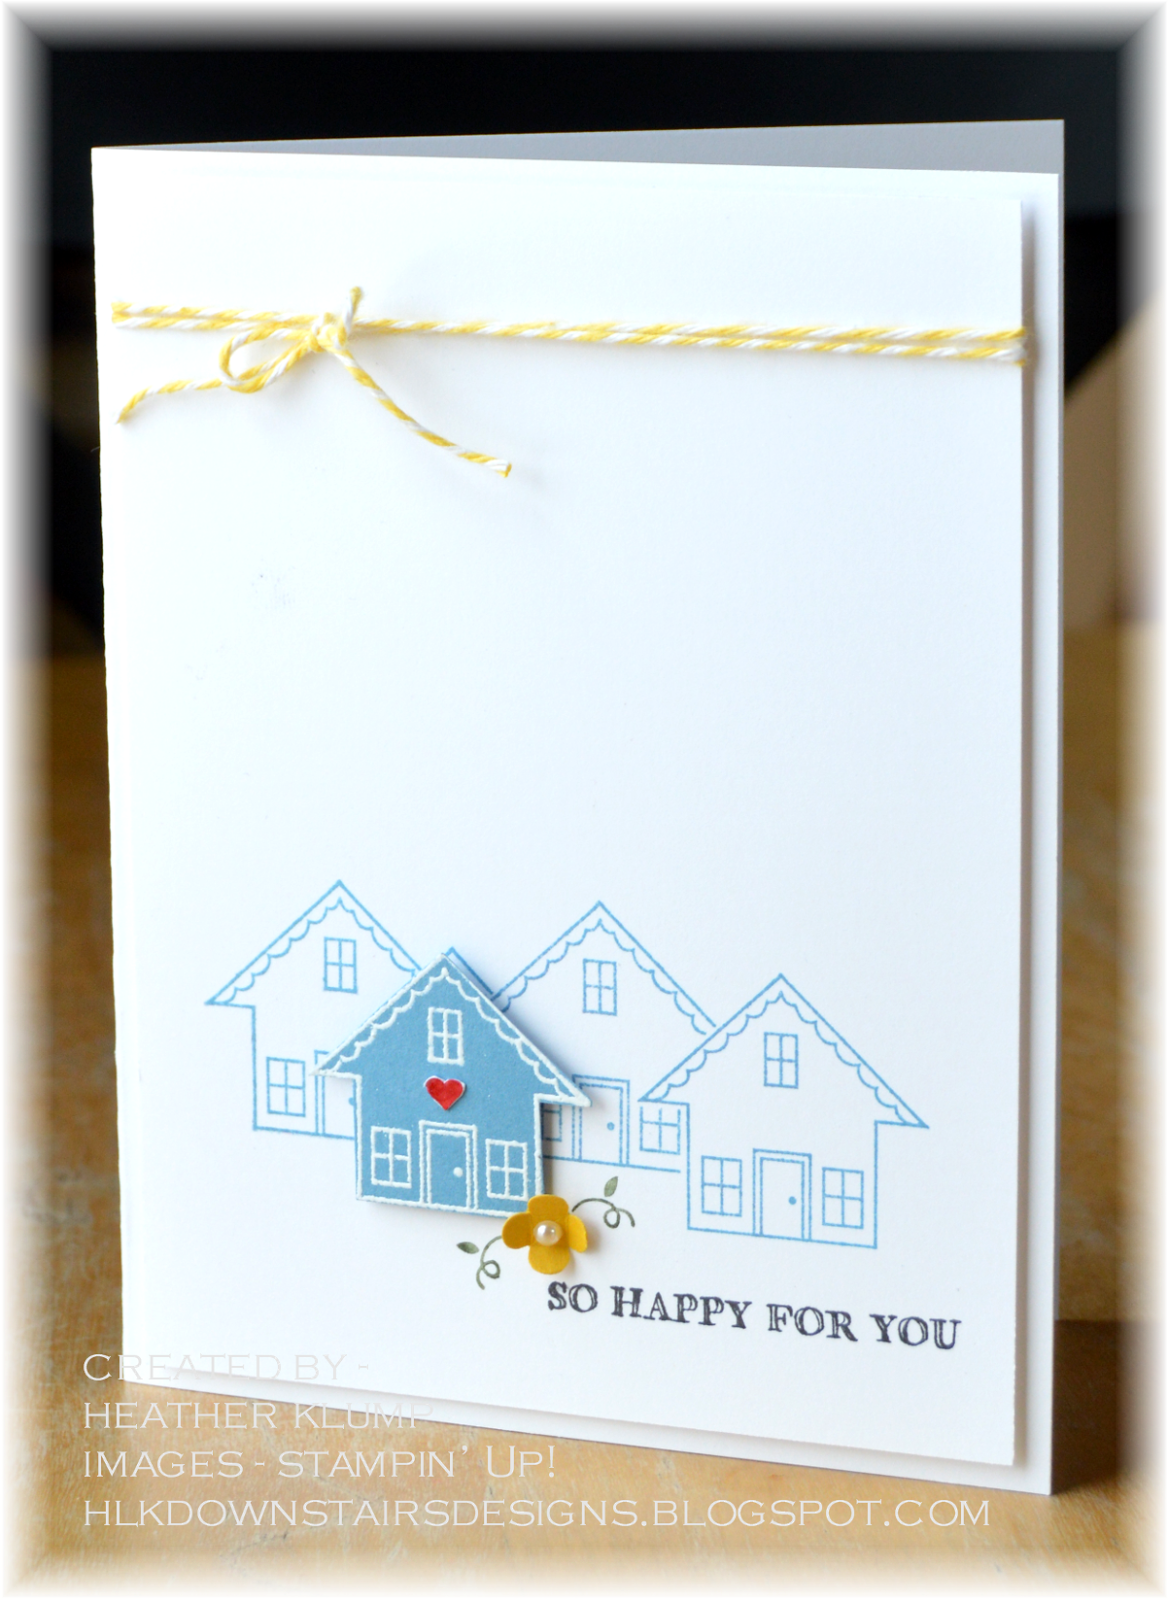 So happy for you downstairs designs cards card ideas and house so happy for you downstairs designs housewarming cardnew house kristyandbryce Gallery